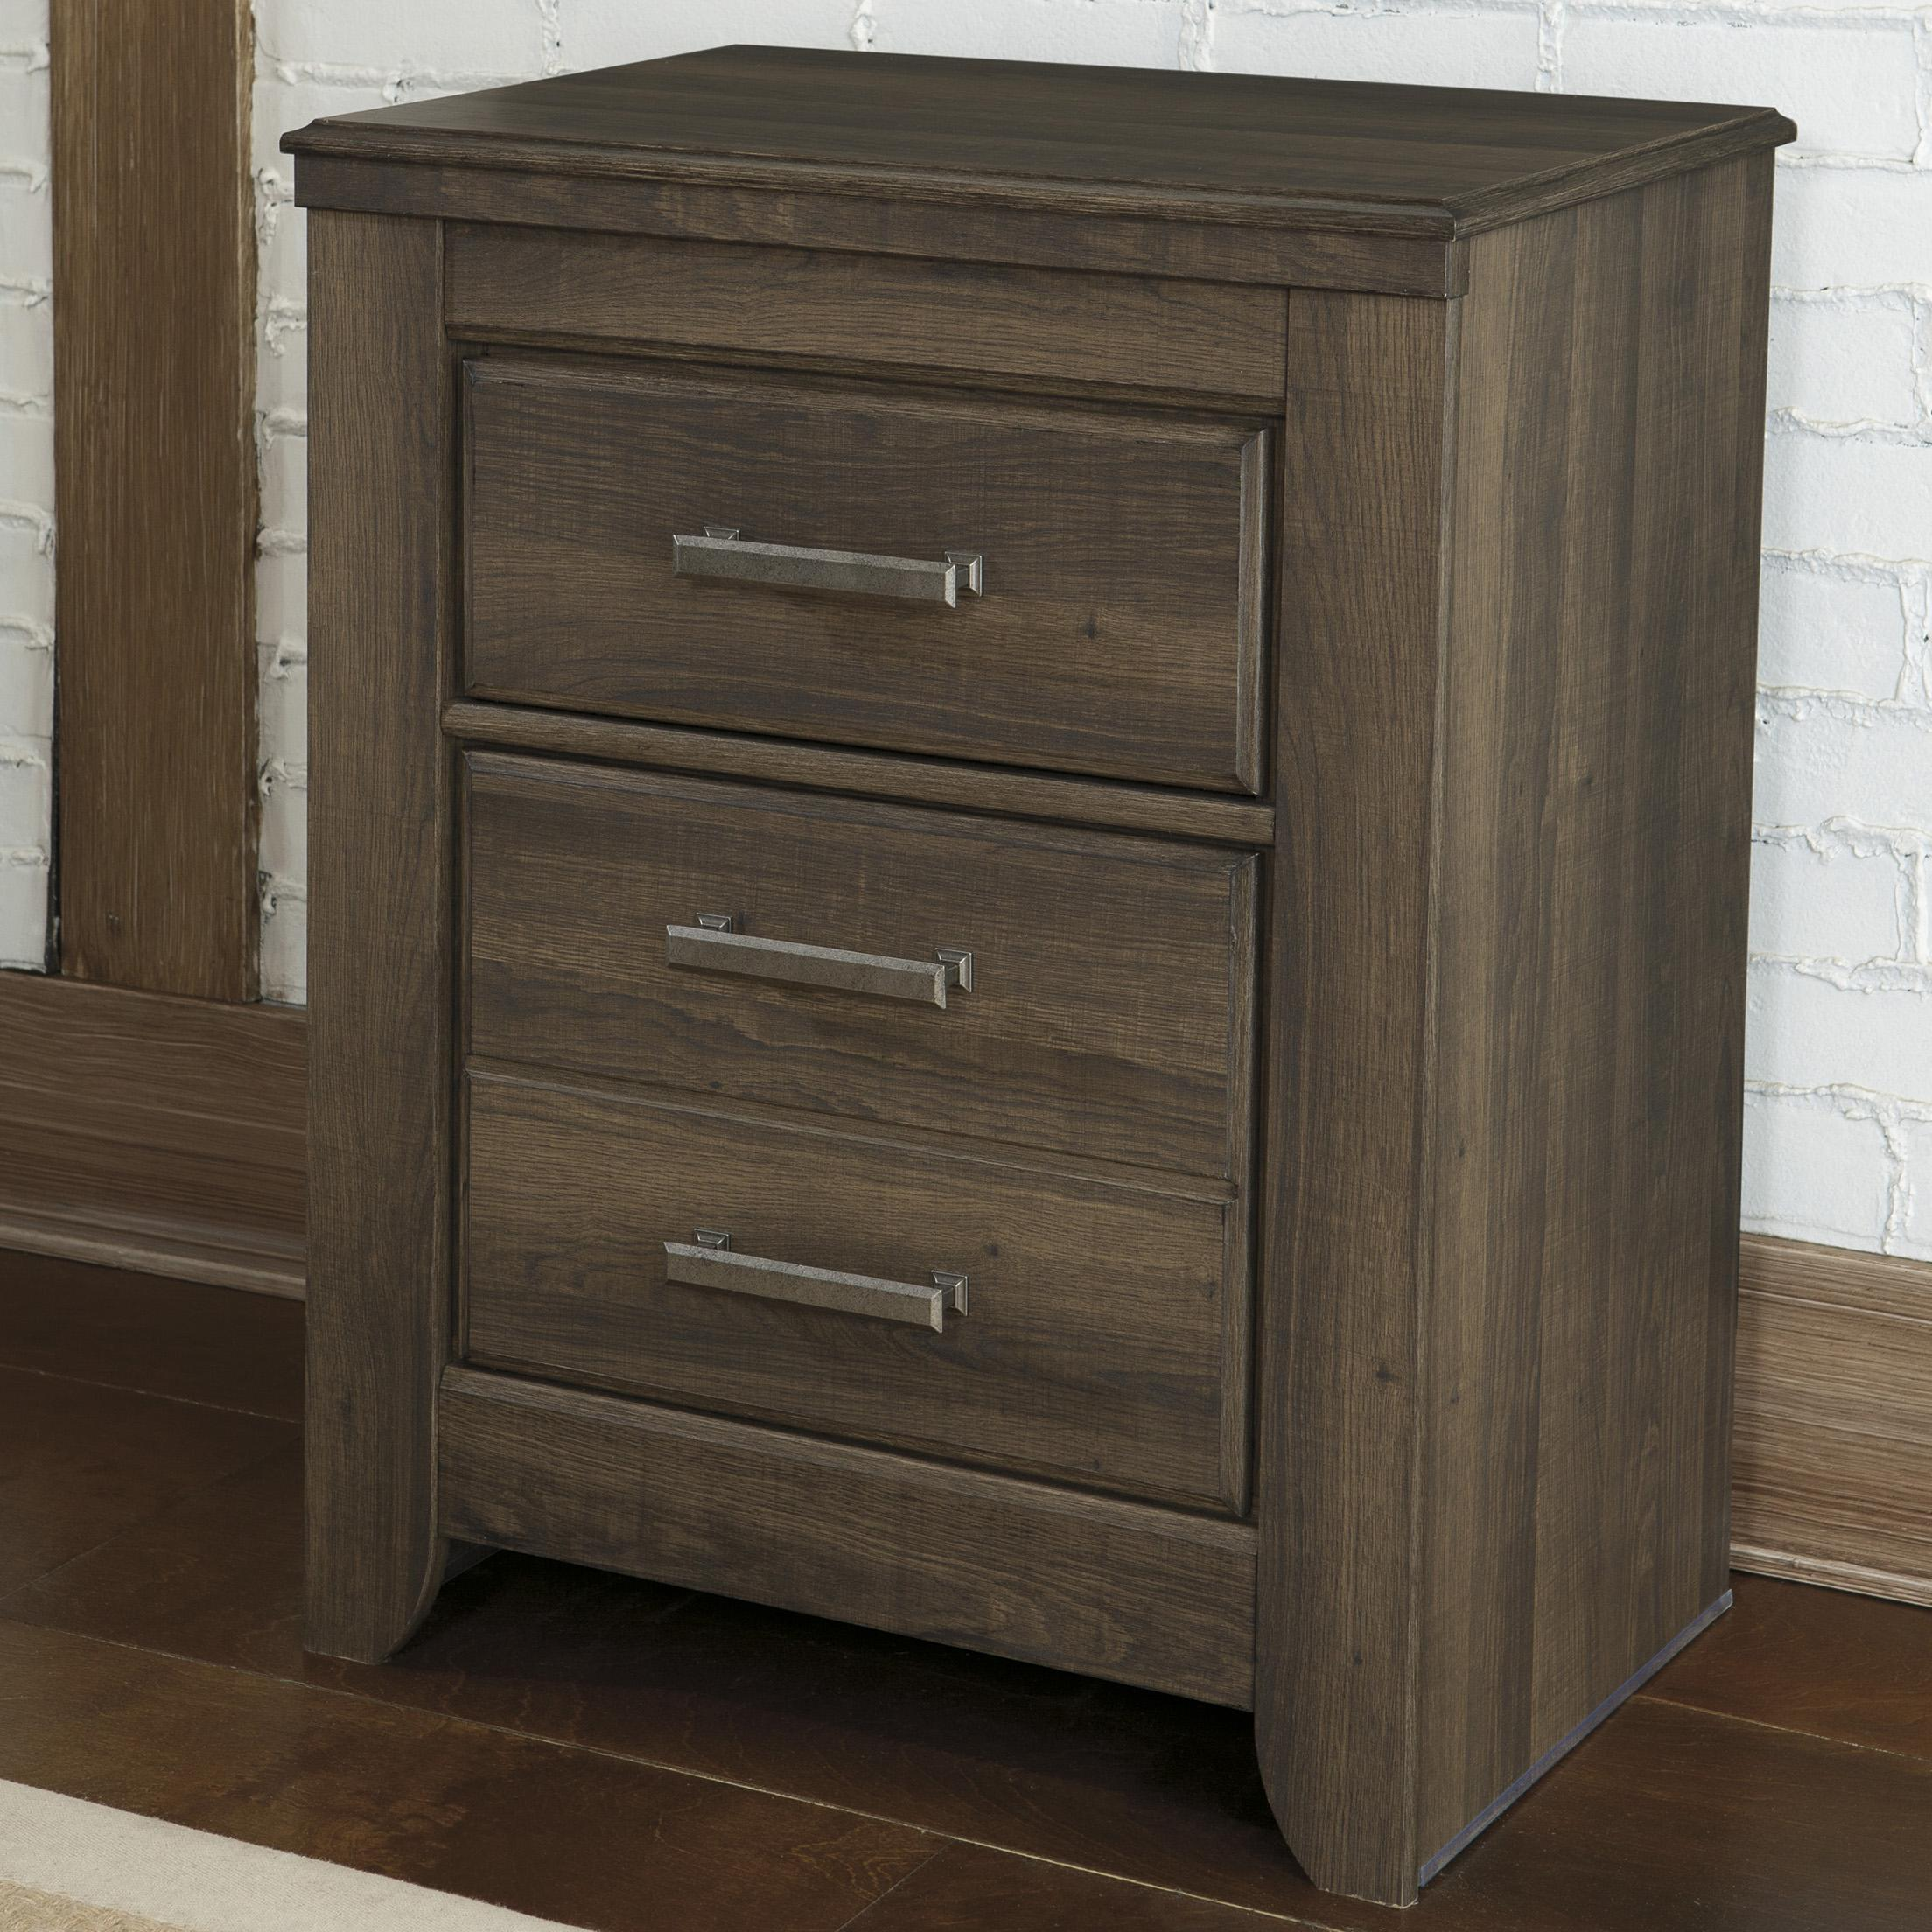 Signature Design by Ashley Juararo 2-Drawer Night Stand - Item Number: B251-92